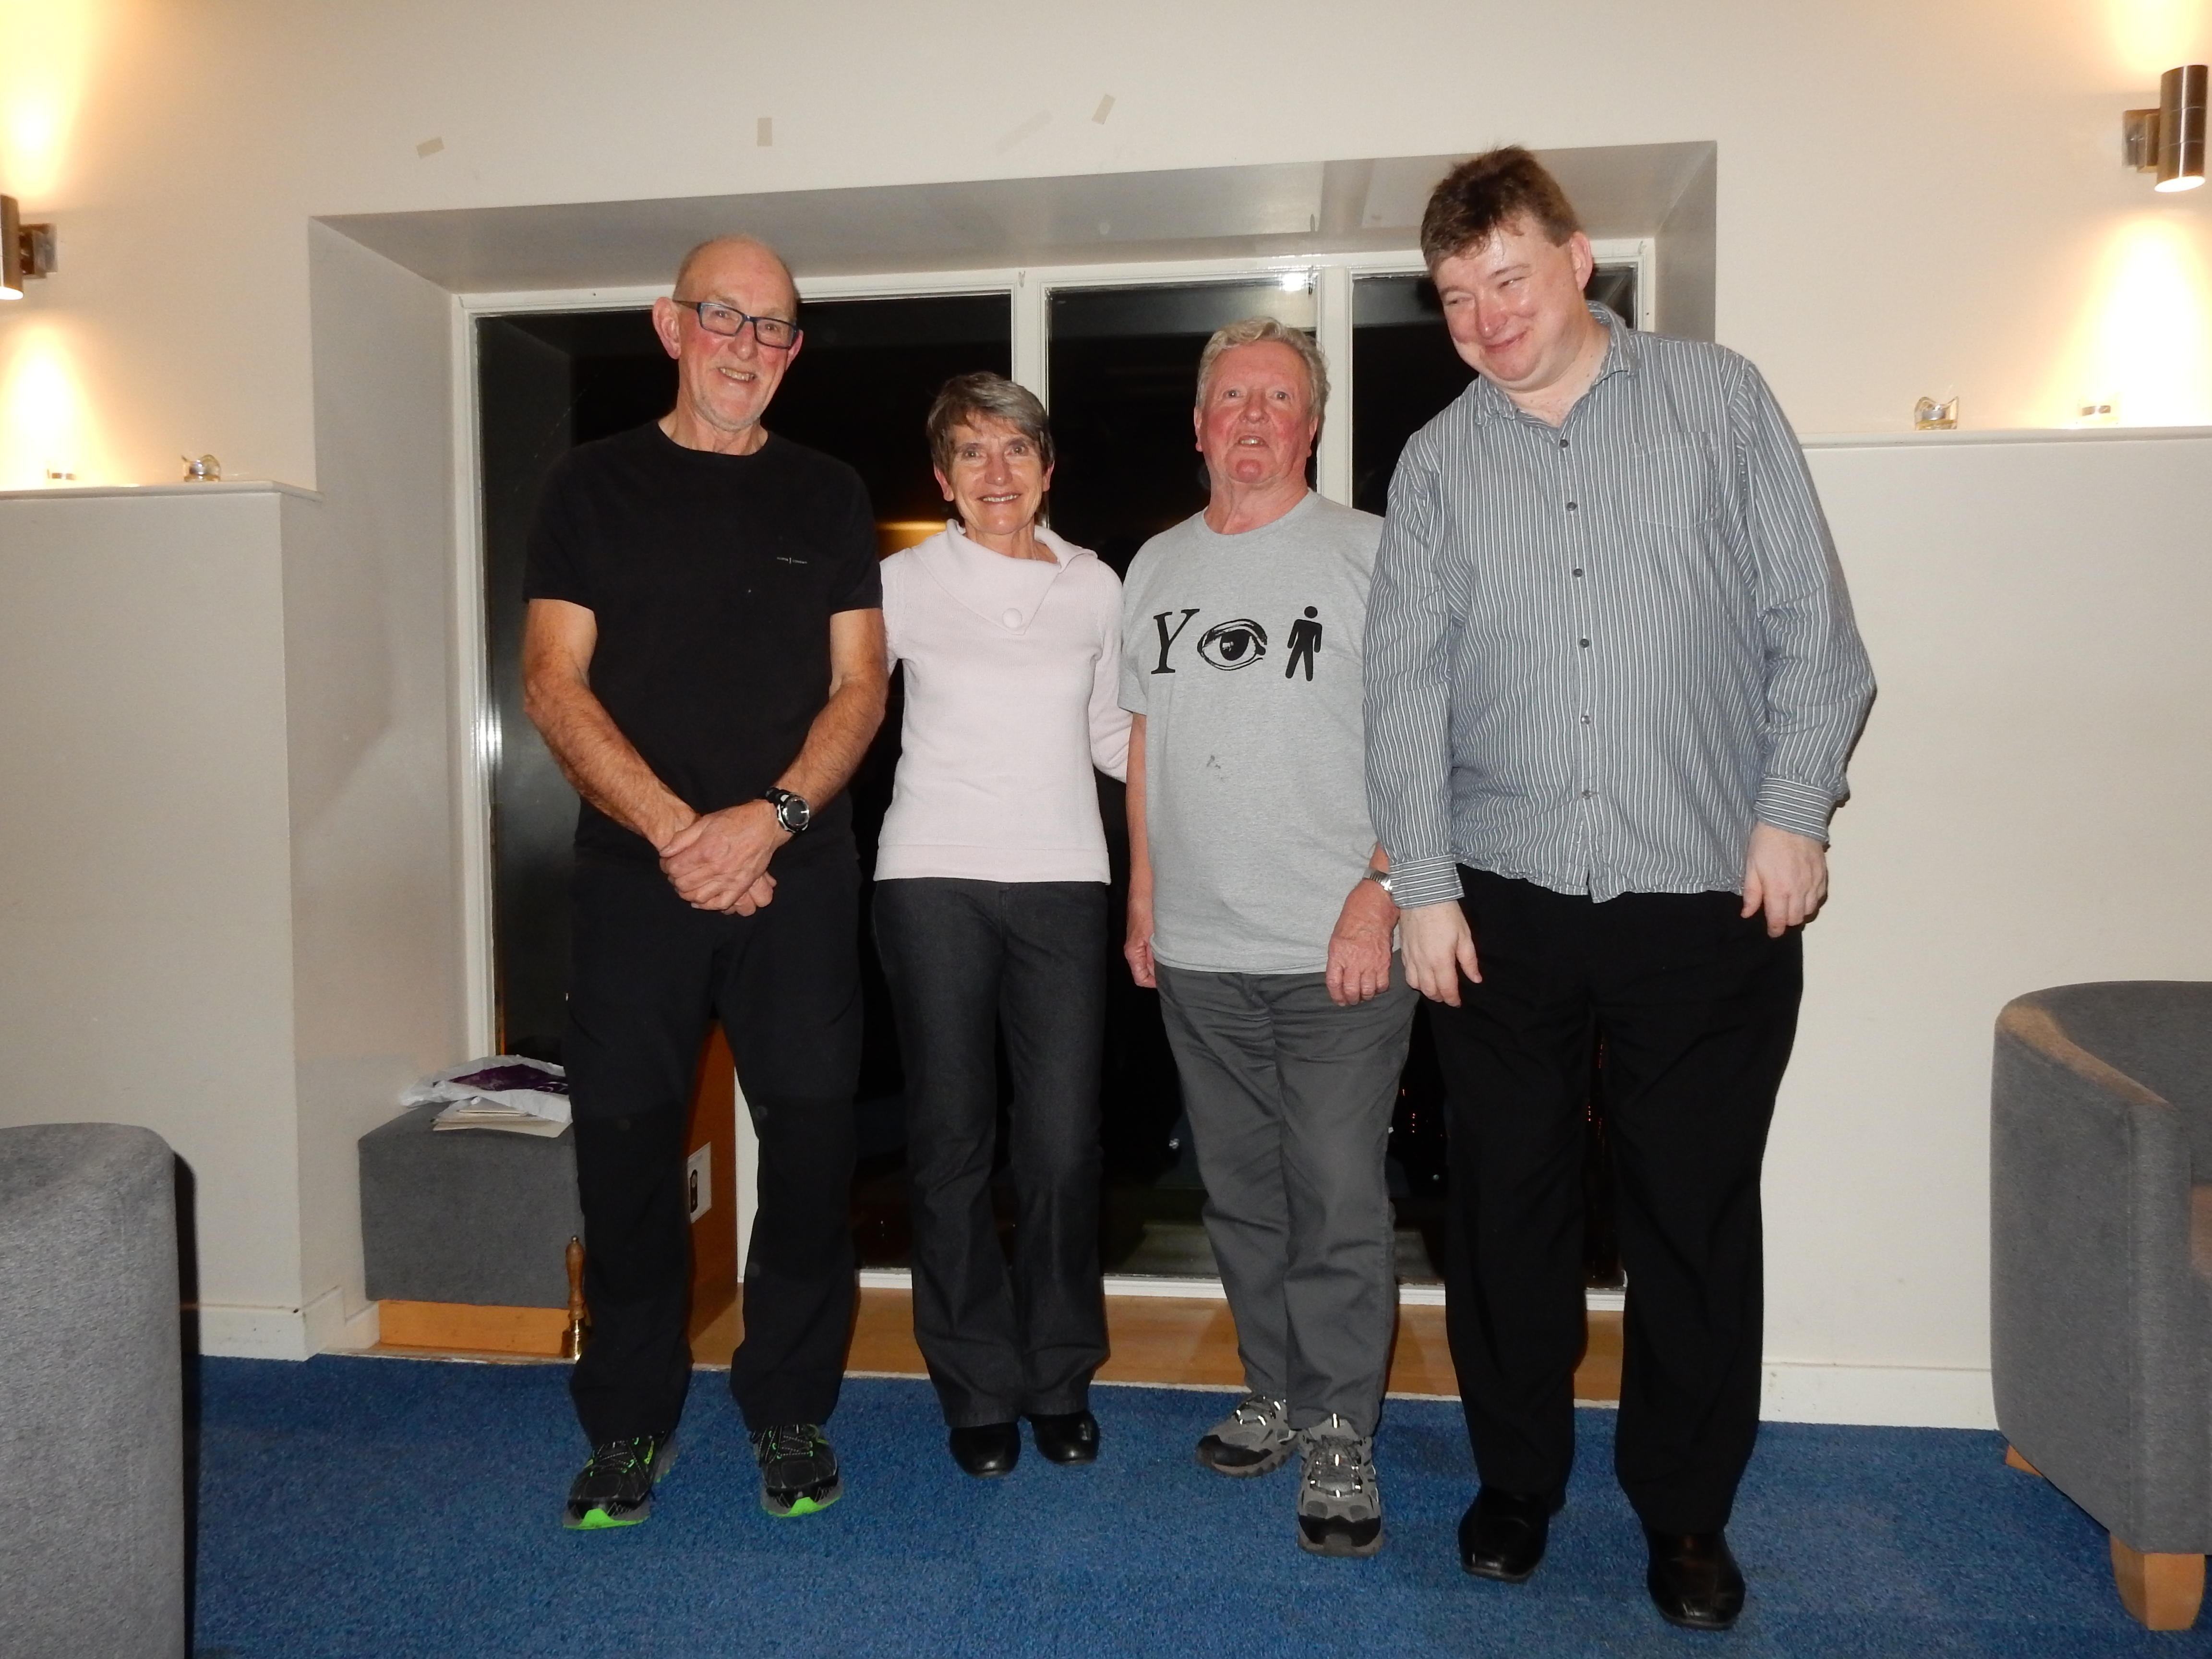 Linda, Peter Lee (Secretary), Jim Fay (Treasurer), Ian Lockey (past Secretary)